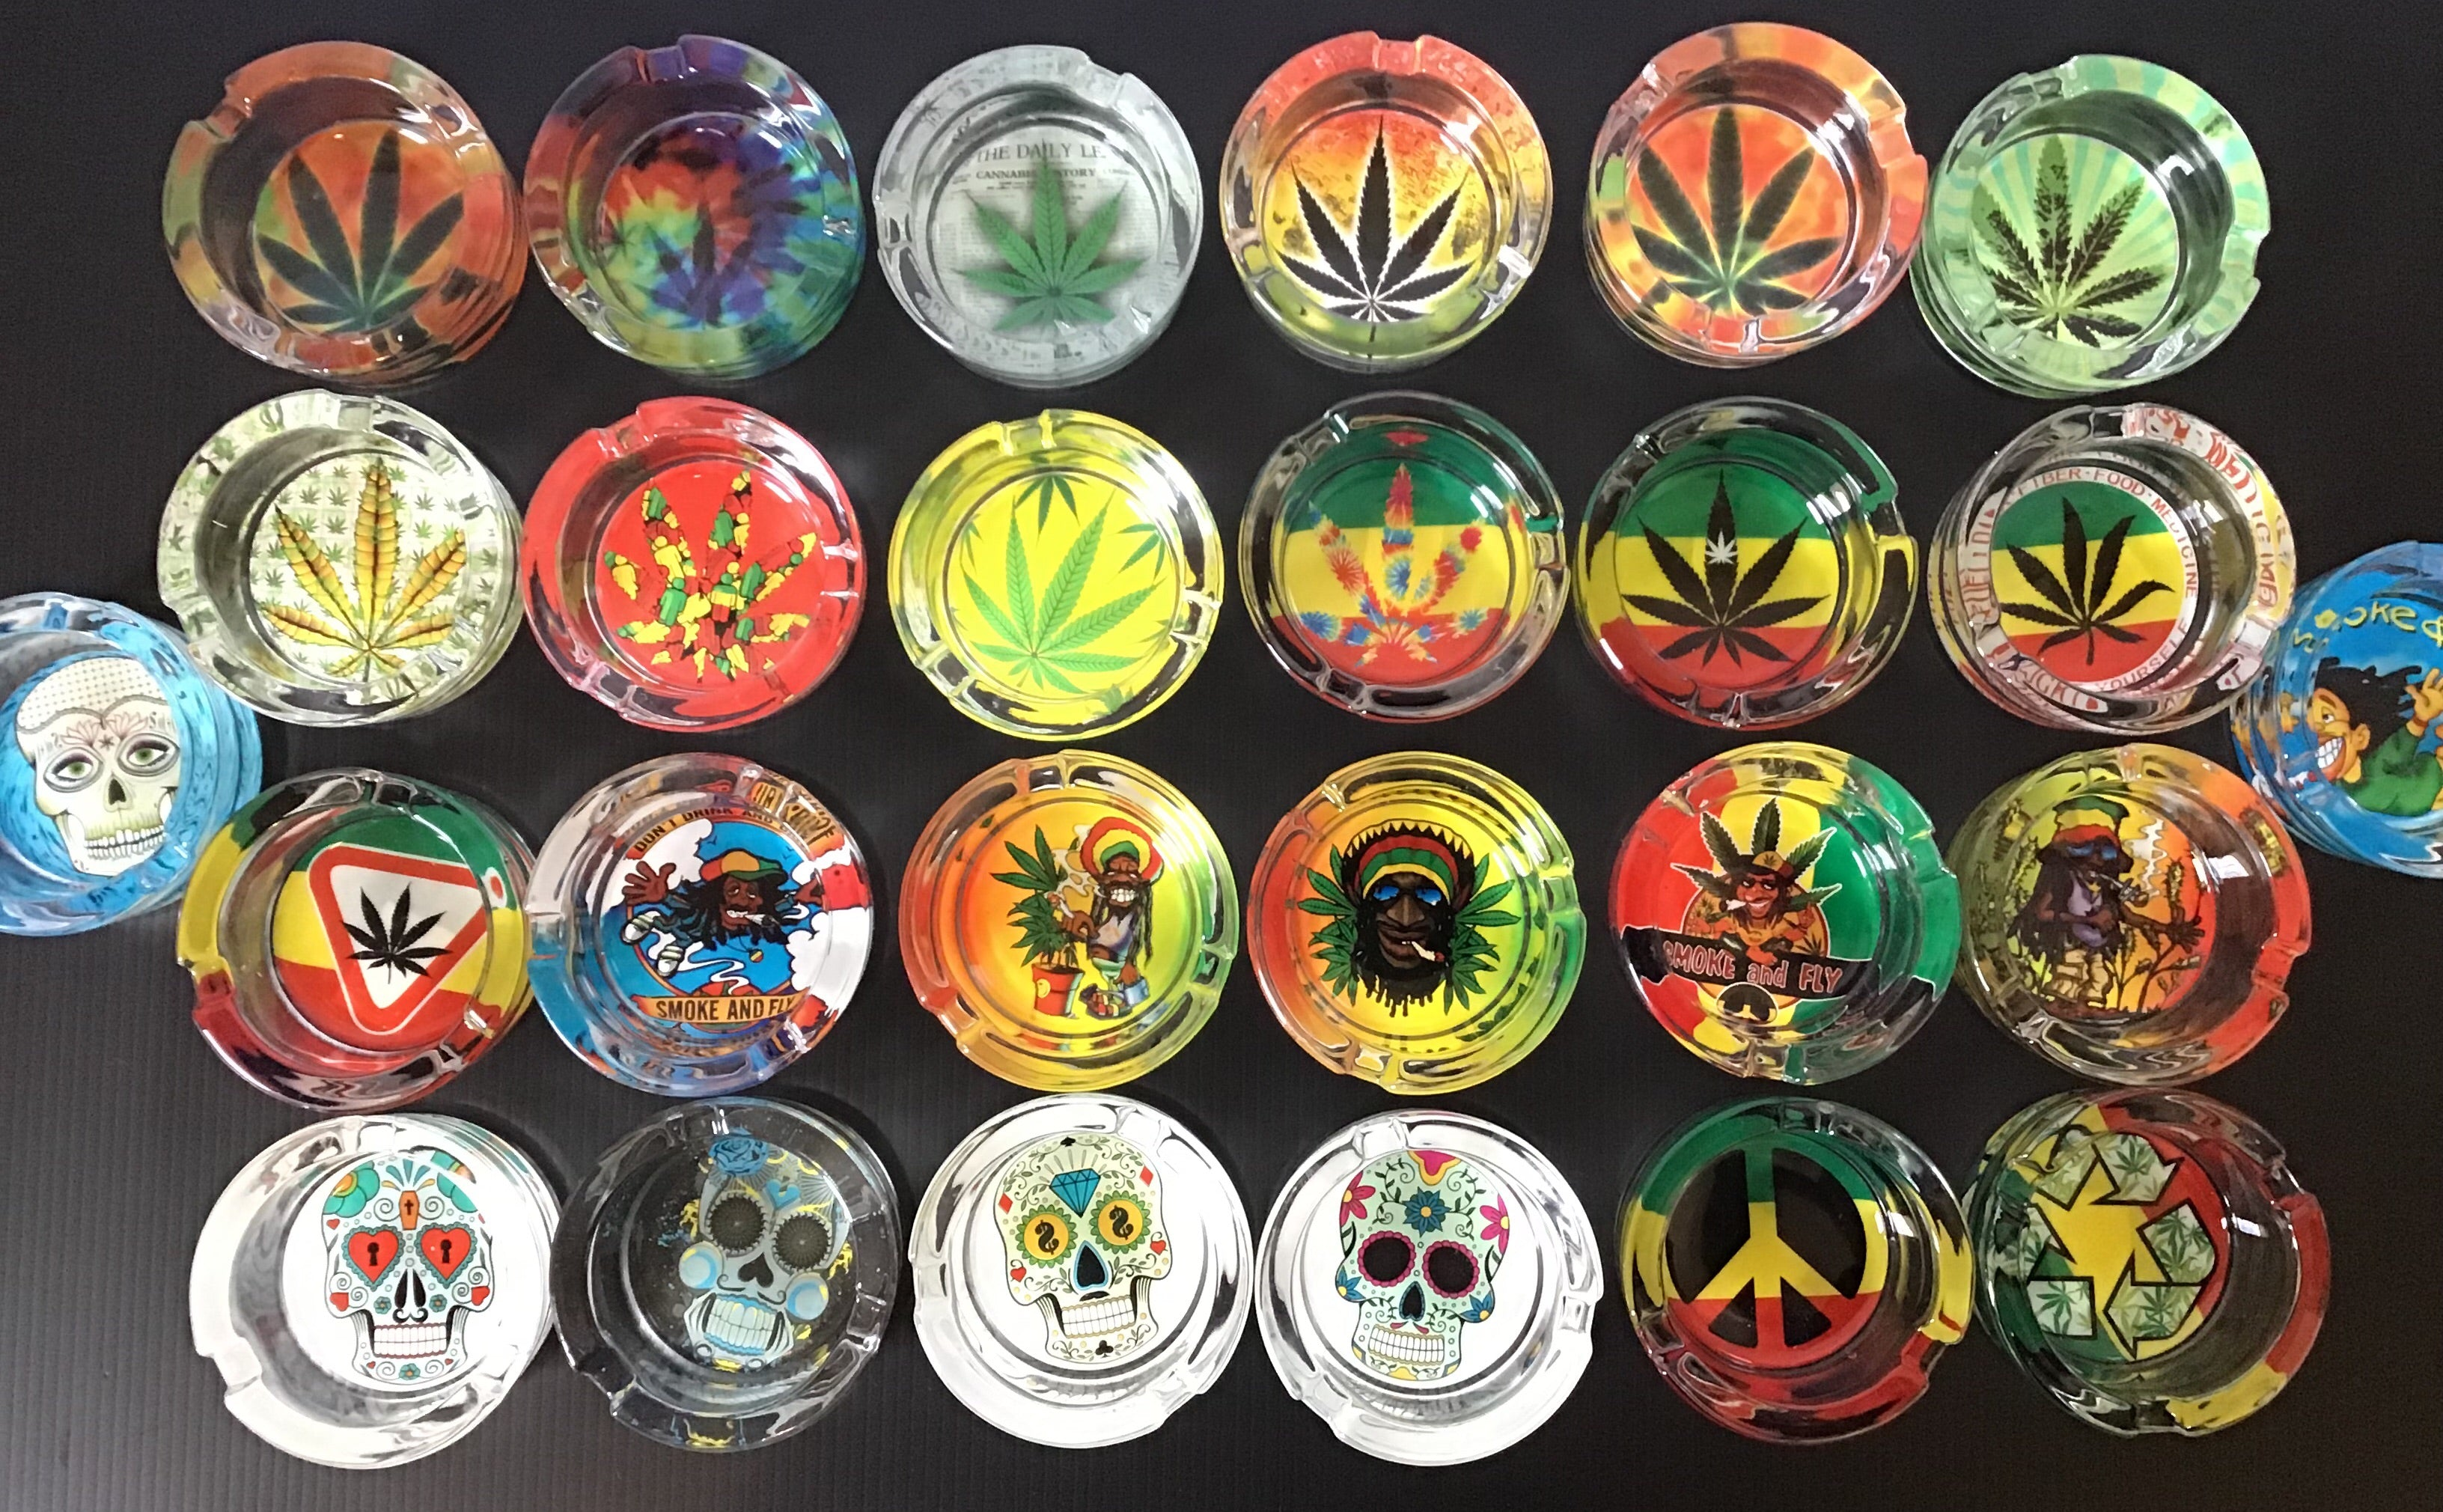 Highest Quality Canna Leaf Design Durable Glass Ashtray yoga, yoga smokes, tattoo, face, nails, nail, glass retail, online, web, weborder, website, tanks, lounge, odor, smoke shop near me, liquid smoke, smoke shop, lounge, smoke lounge, stoner, smoke, high, life, highlife, dabber, love, stoned, highsociety.